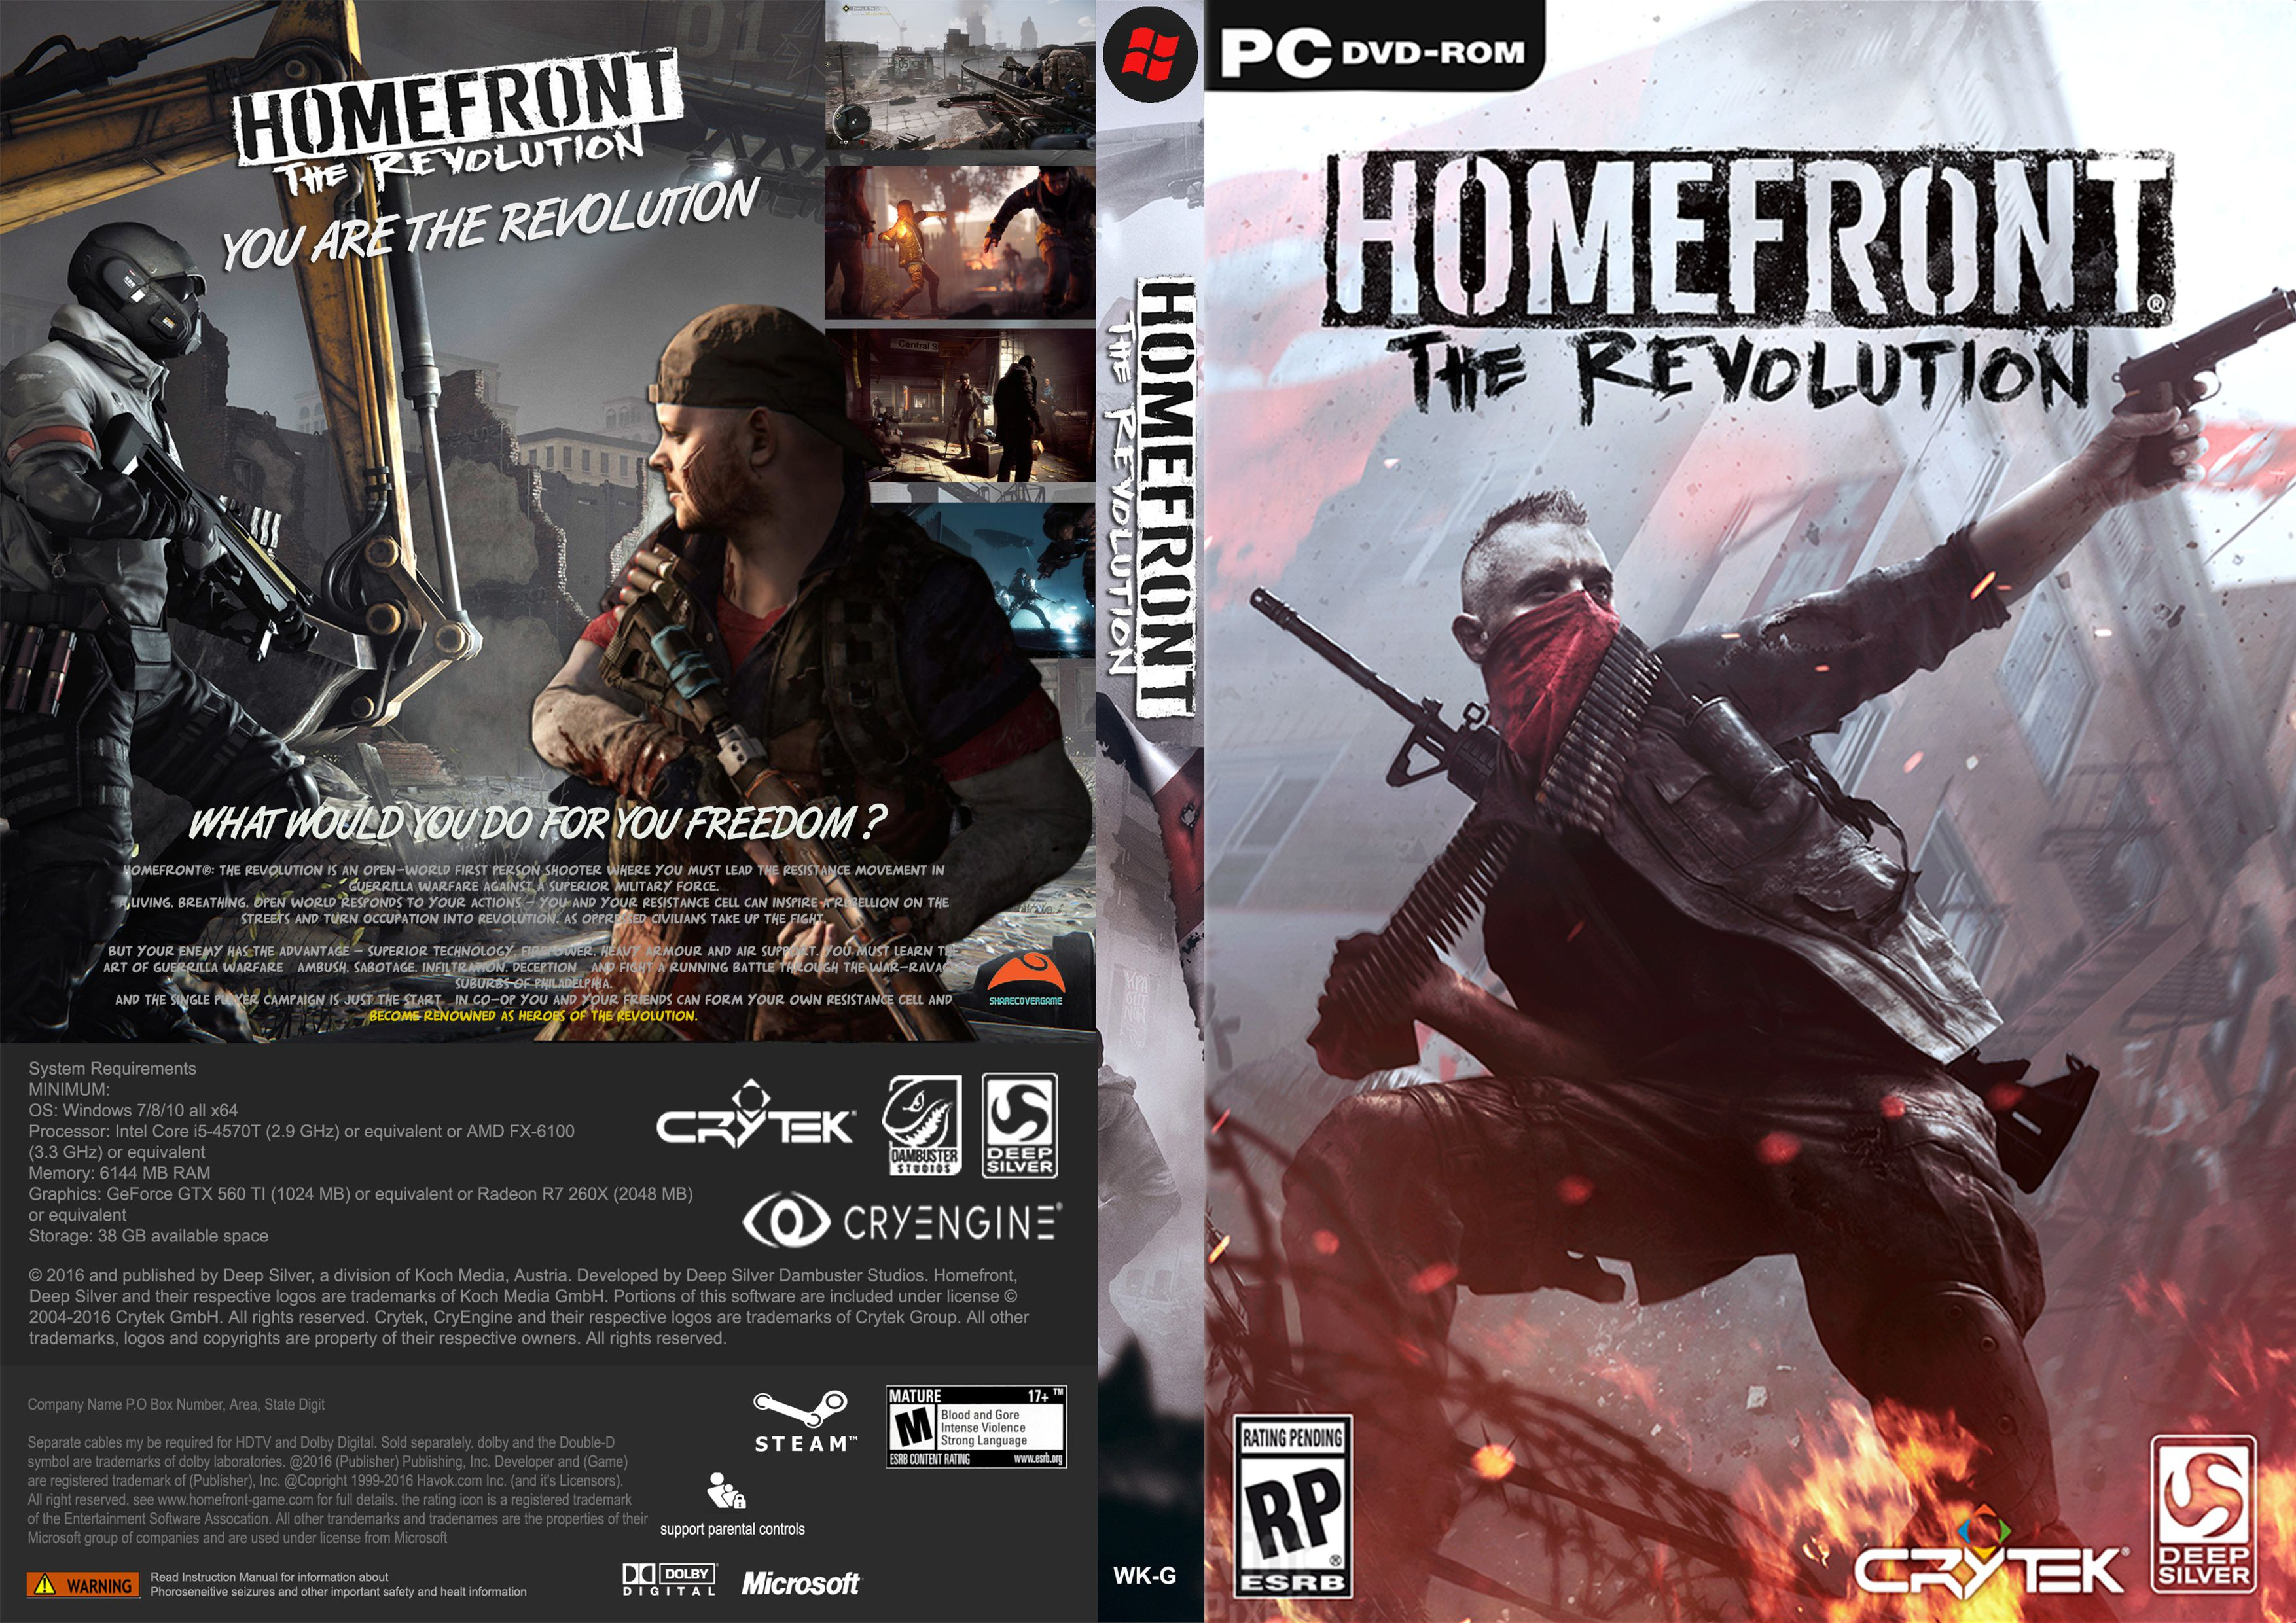 Download - Homefront The Revolution 2016 RePack DLC - PC [Torrent]